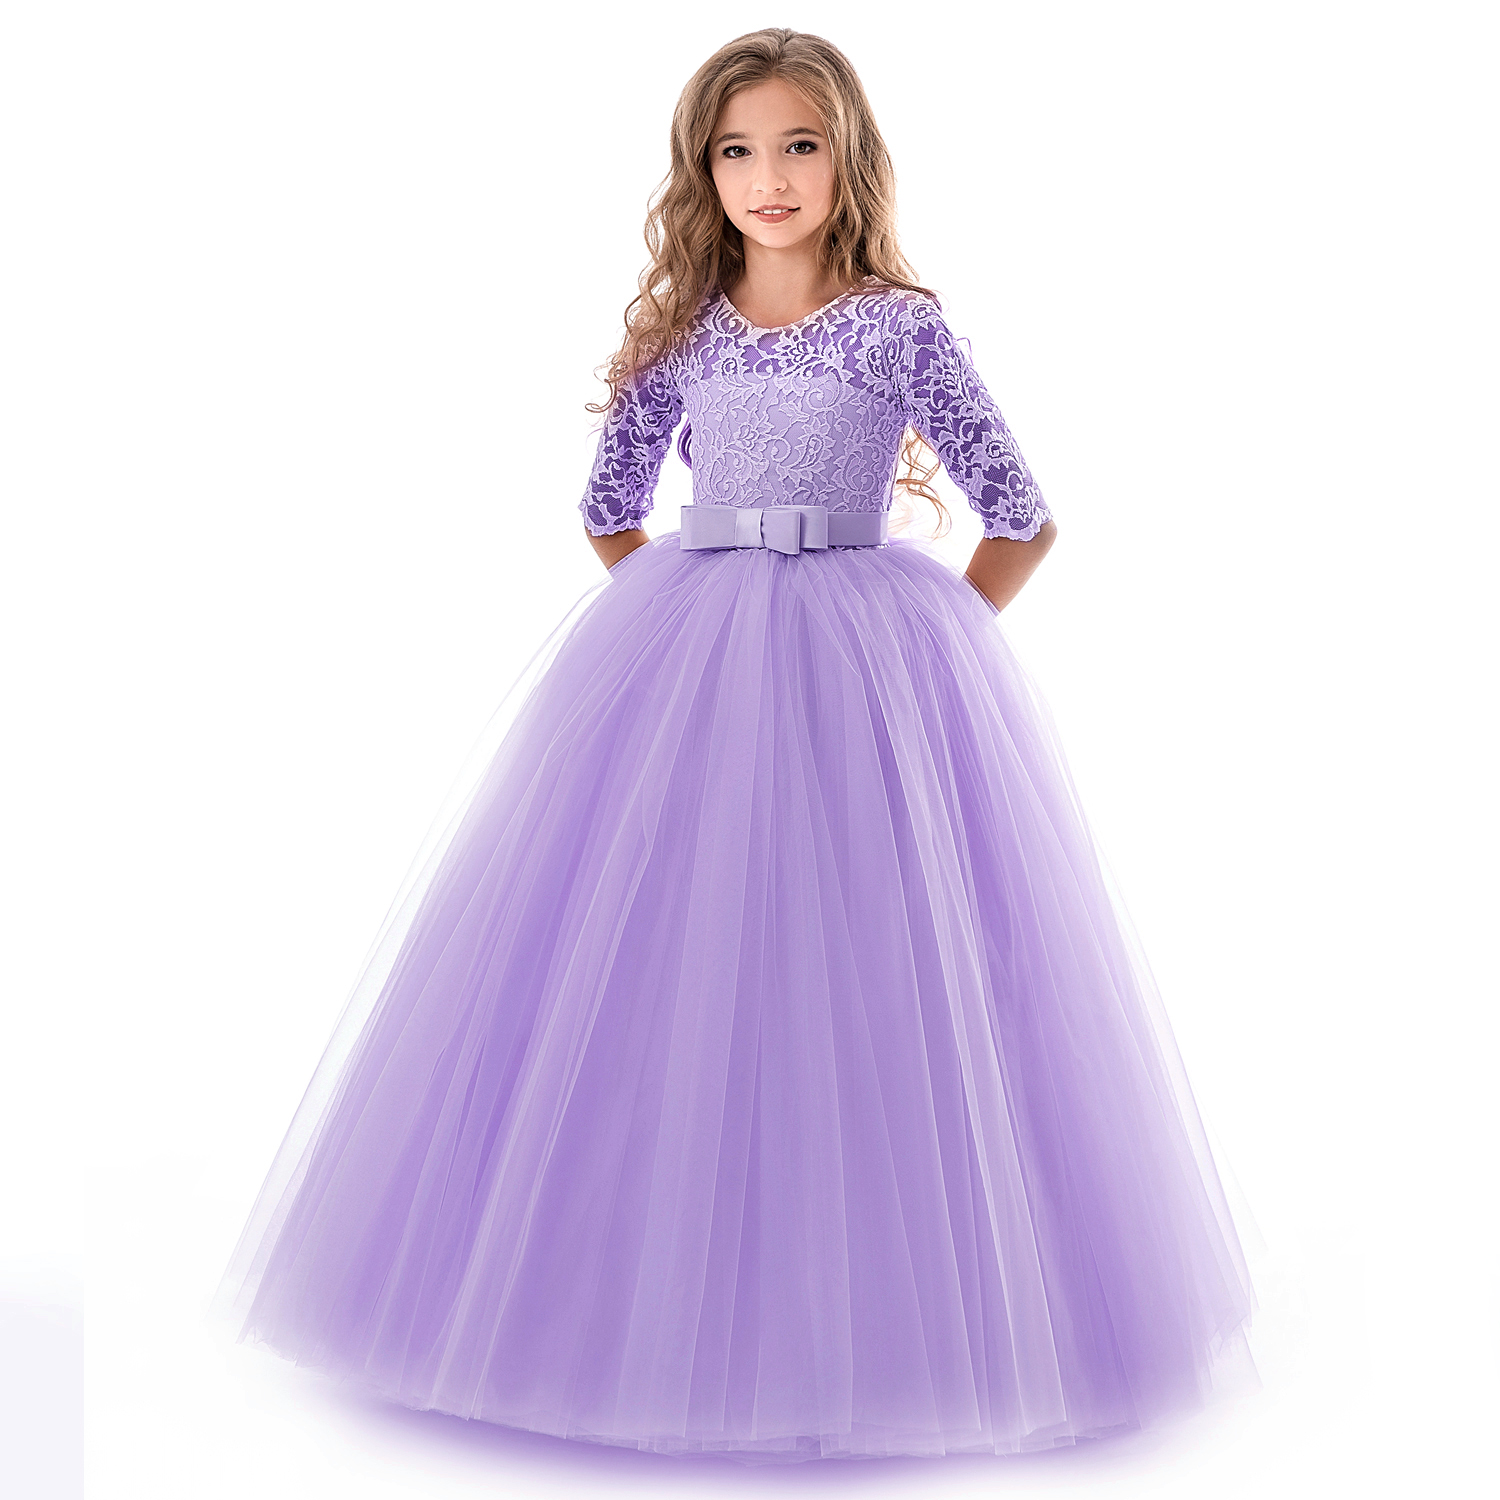 Girls Lace Dress For Wedding Embroidery Party Dresses Evening Christmas Girl Ball Gown Princess Costume Children Vestido 6 14Y 3